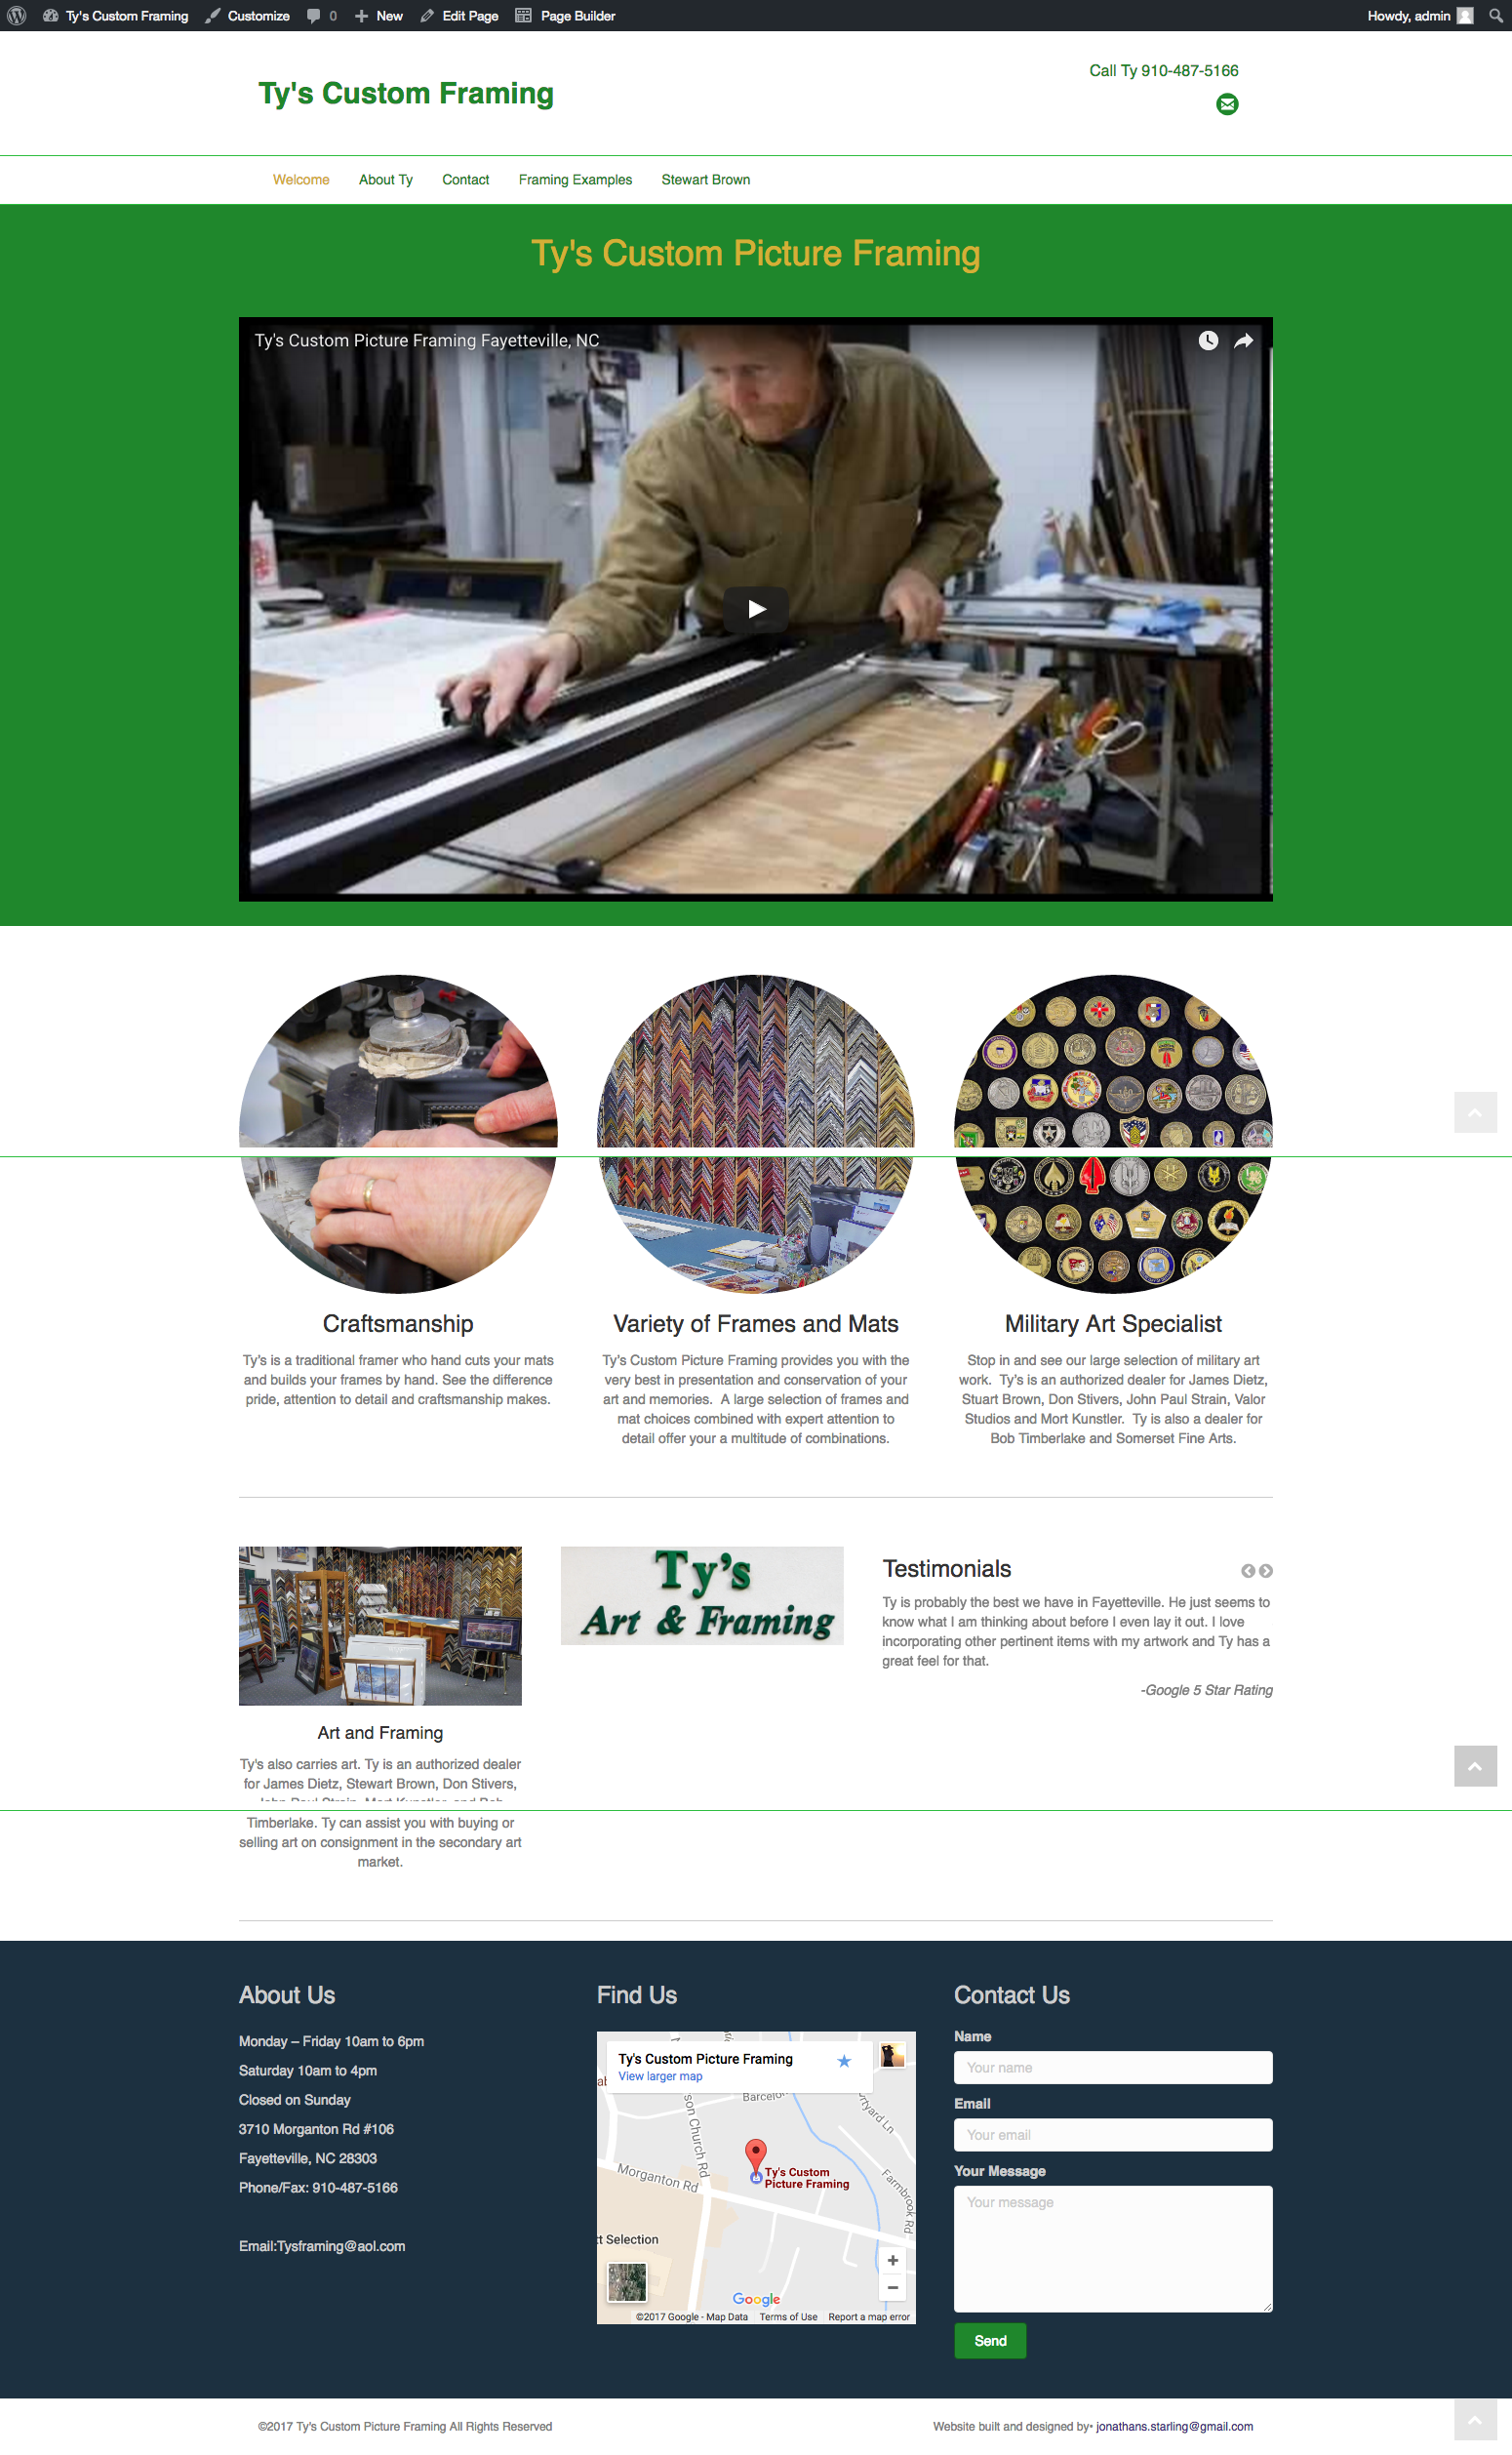 Sample website design and layout from J. Starling Photography example of website creation for local and small business